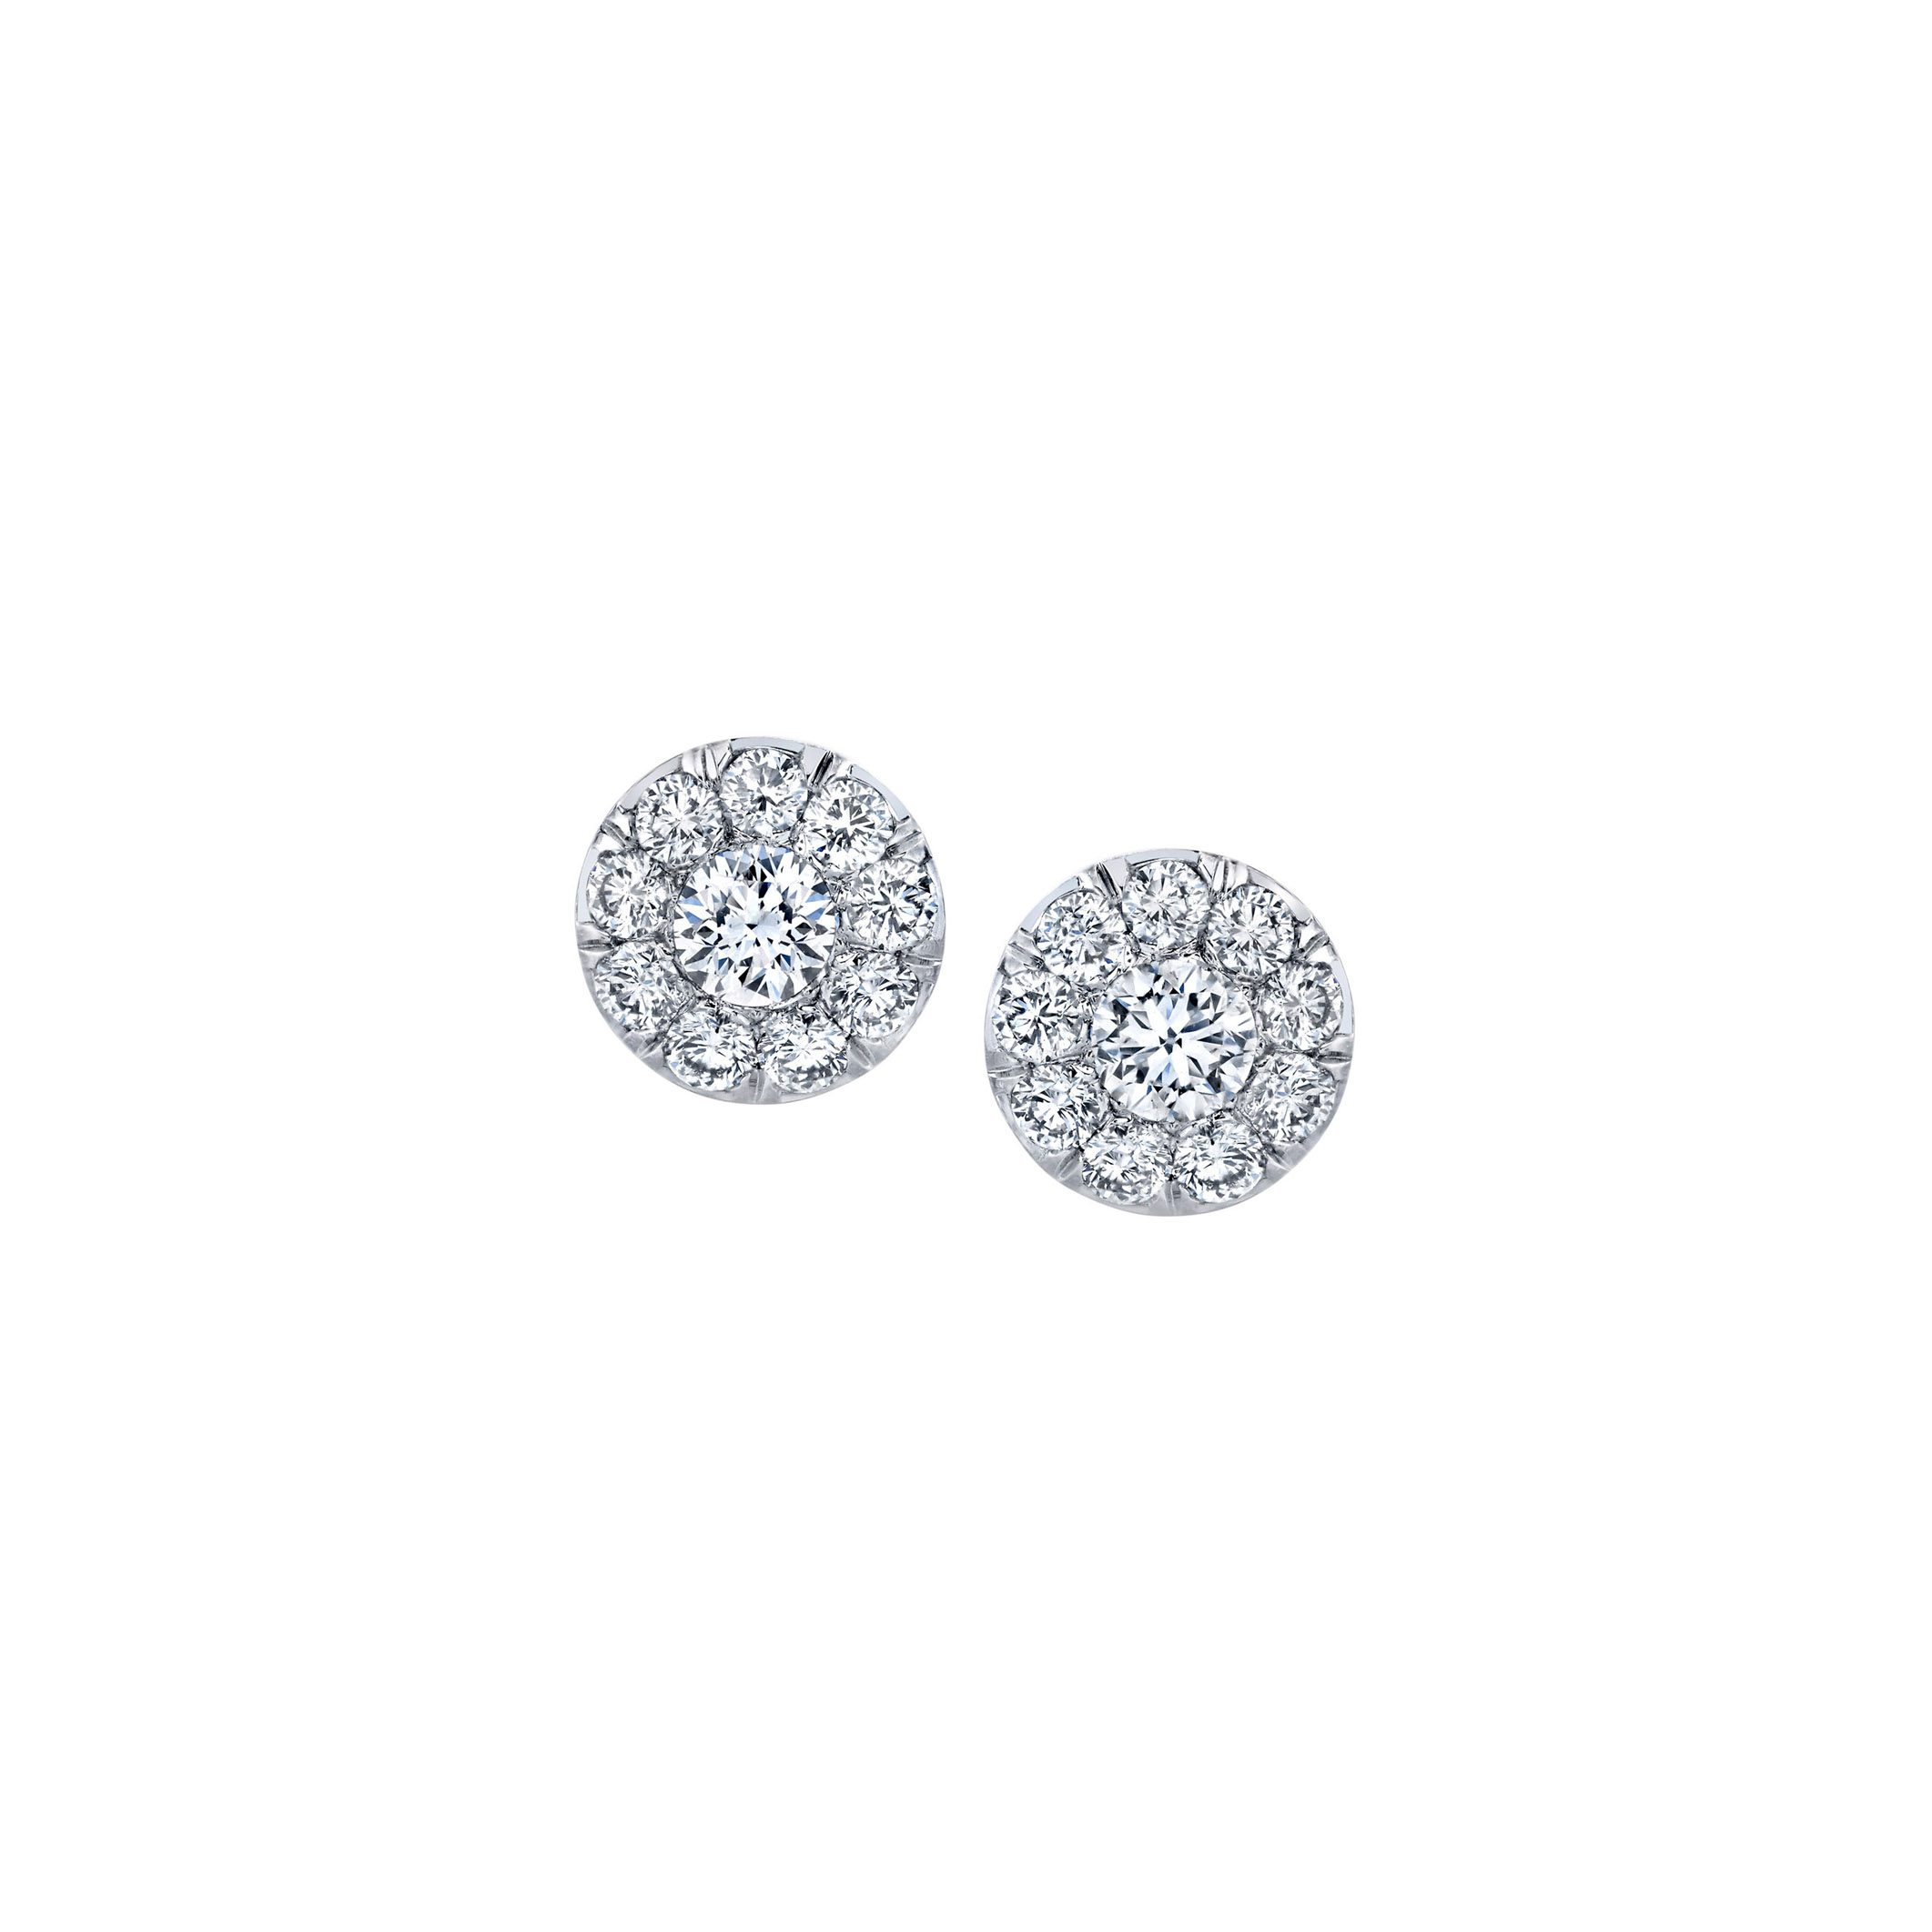 Lucile Round Brilliant Seamless Solitaire® Diamond Stud Earrings in 18k White Gold Front View by Oui by Jean Dousset